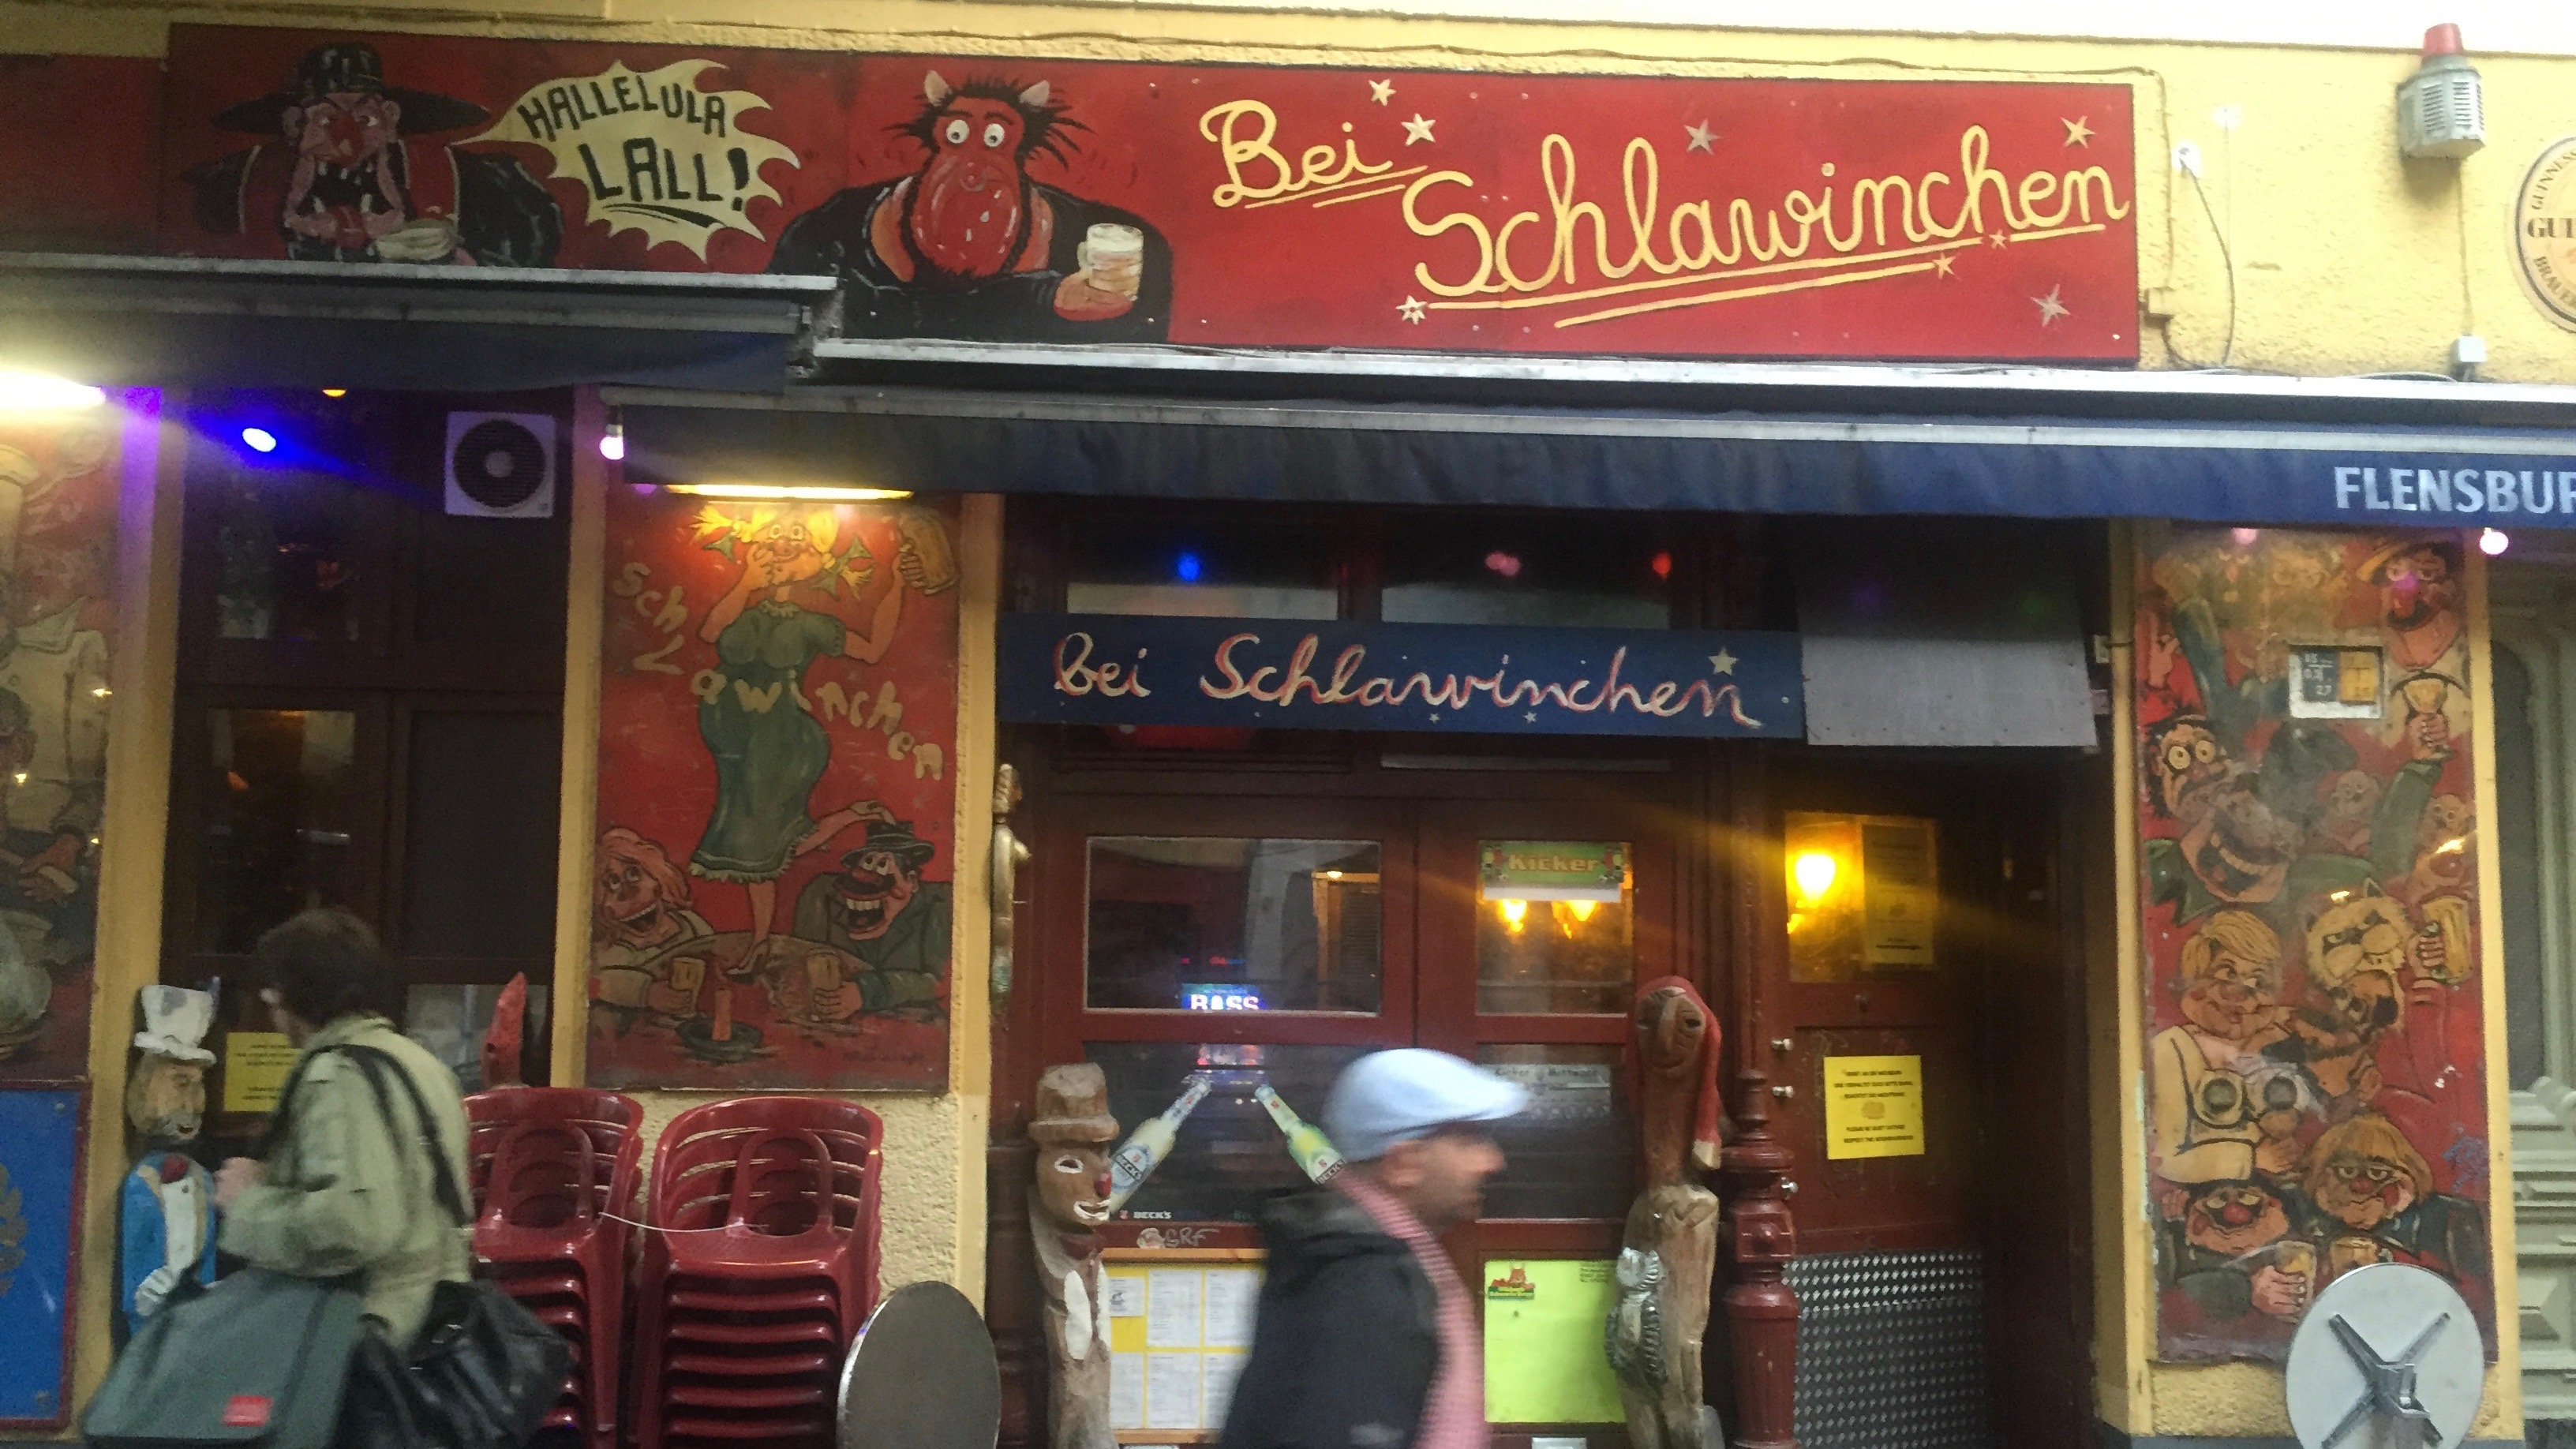 The legendary Bei Schlawinchen in Berlin.